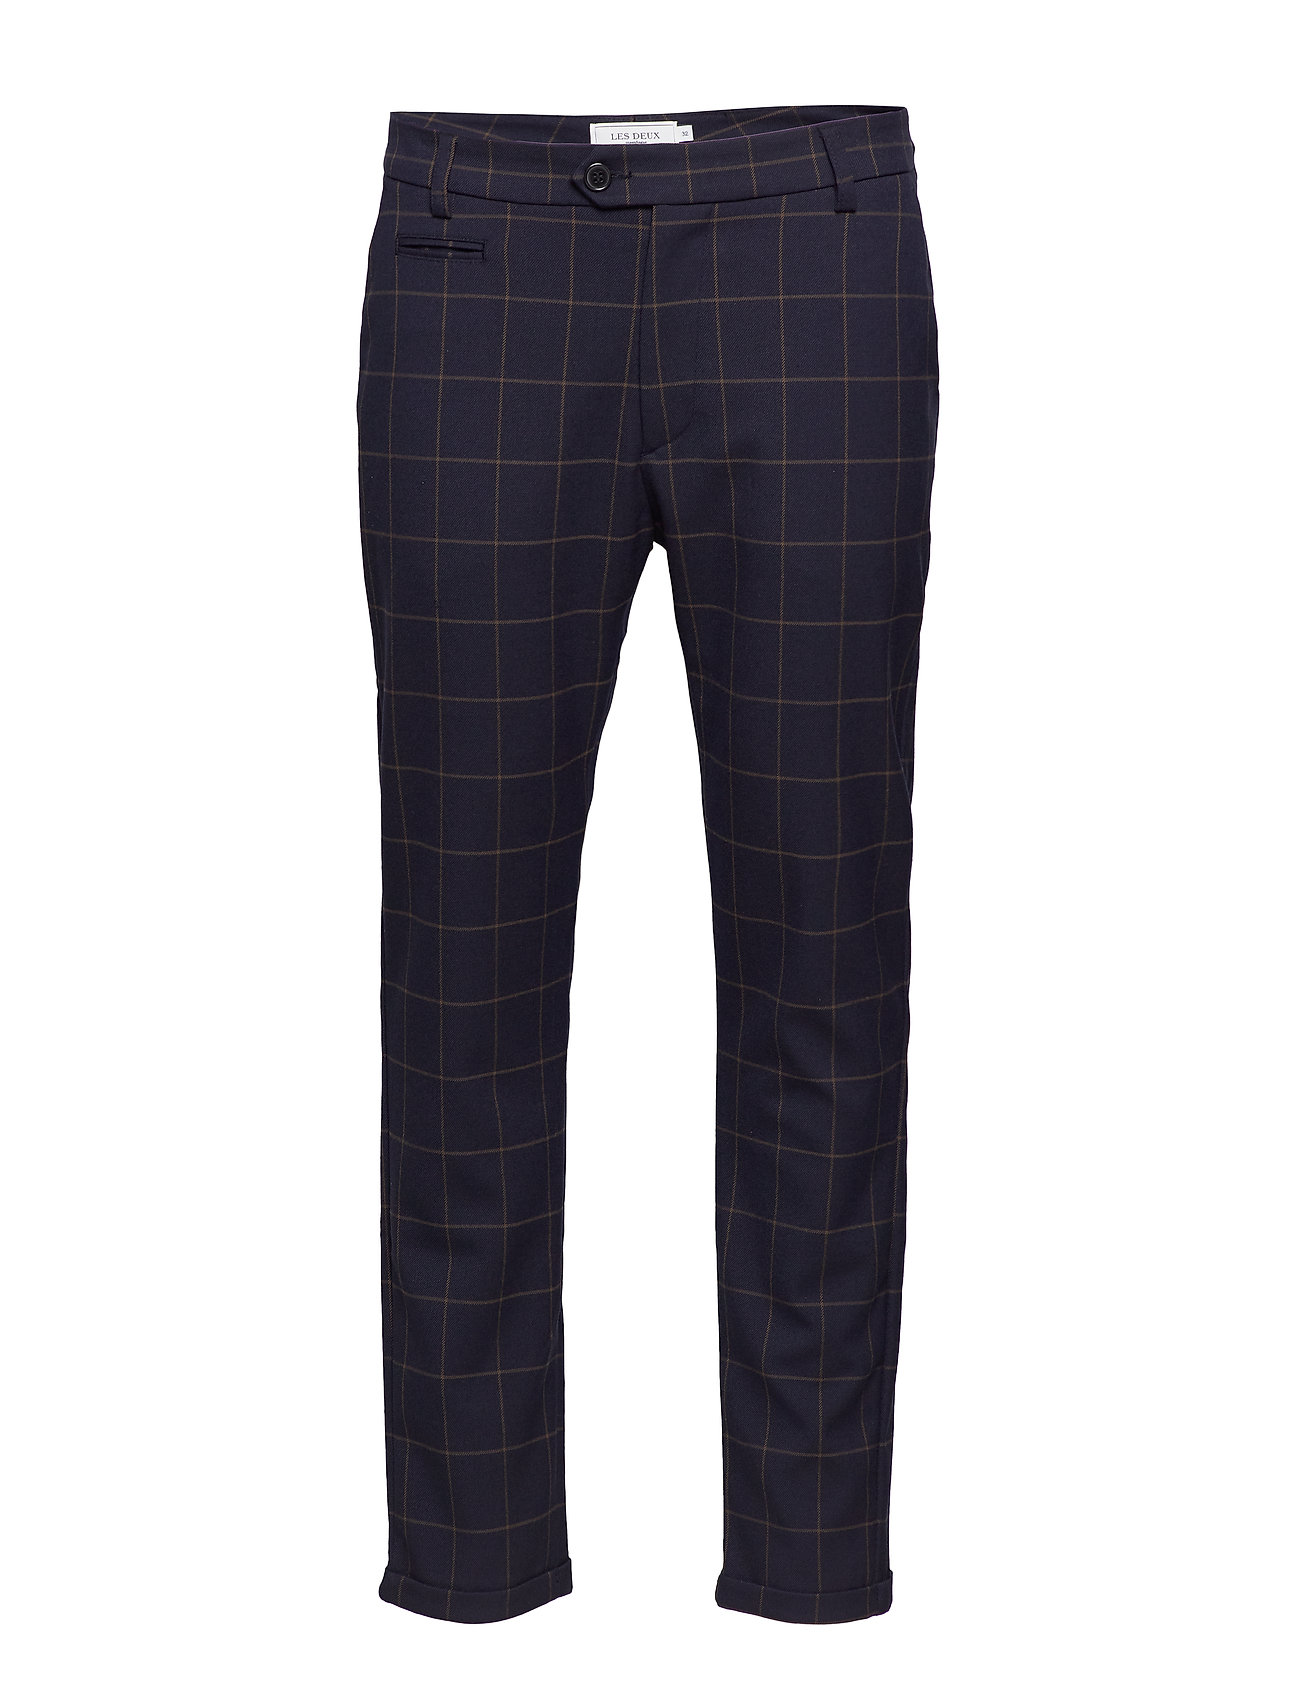 Les Deux Como Check Suit Pants - 4687-DARK NAVY/BROWN